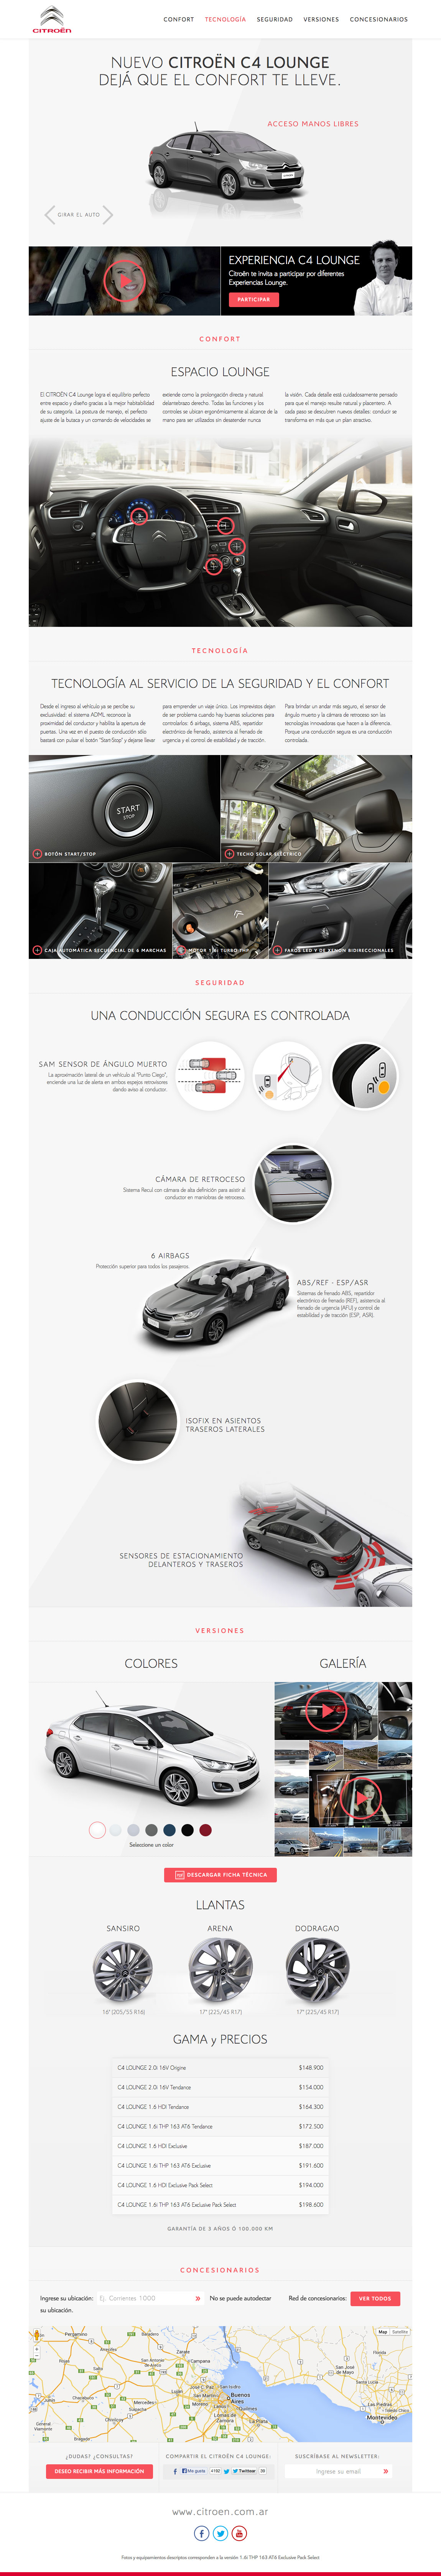 Citroen C4 Lounge Website Screenshot